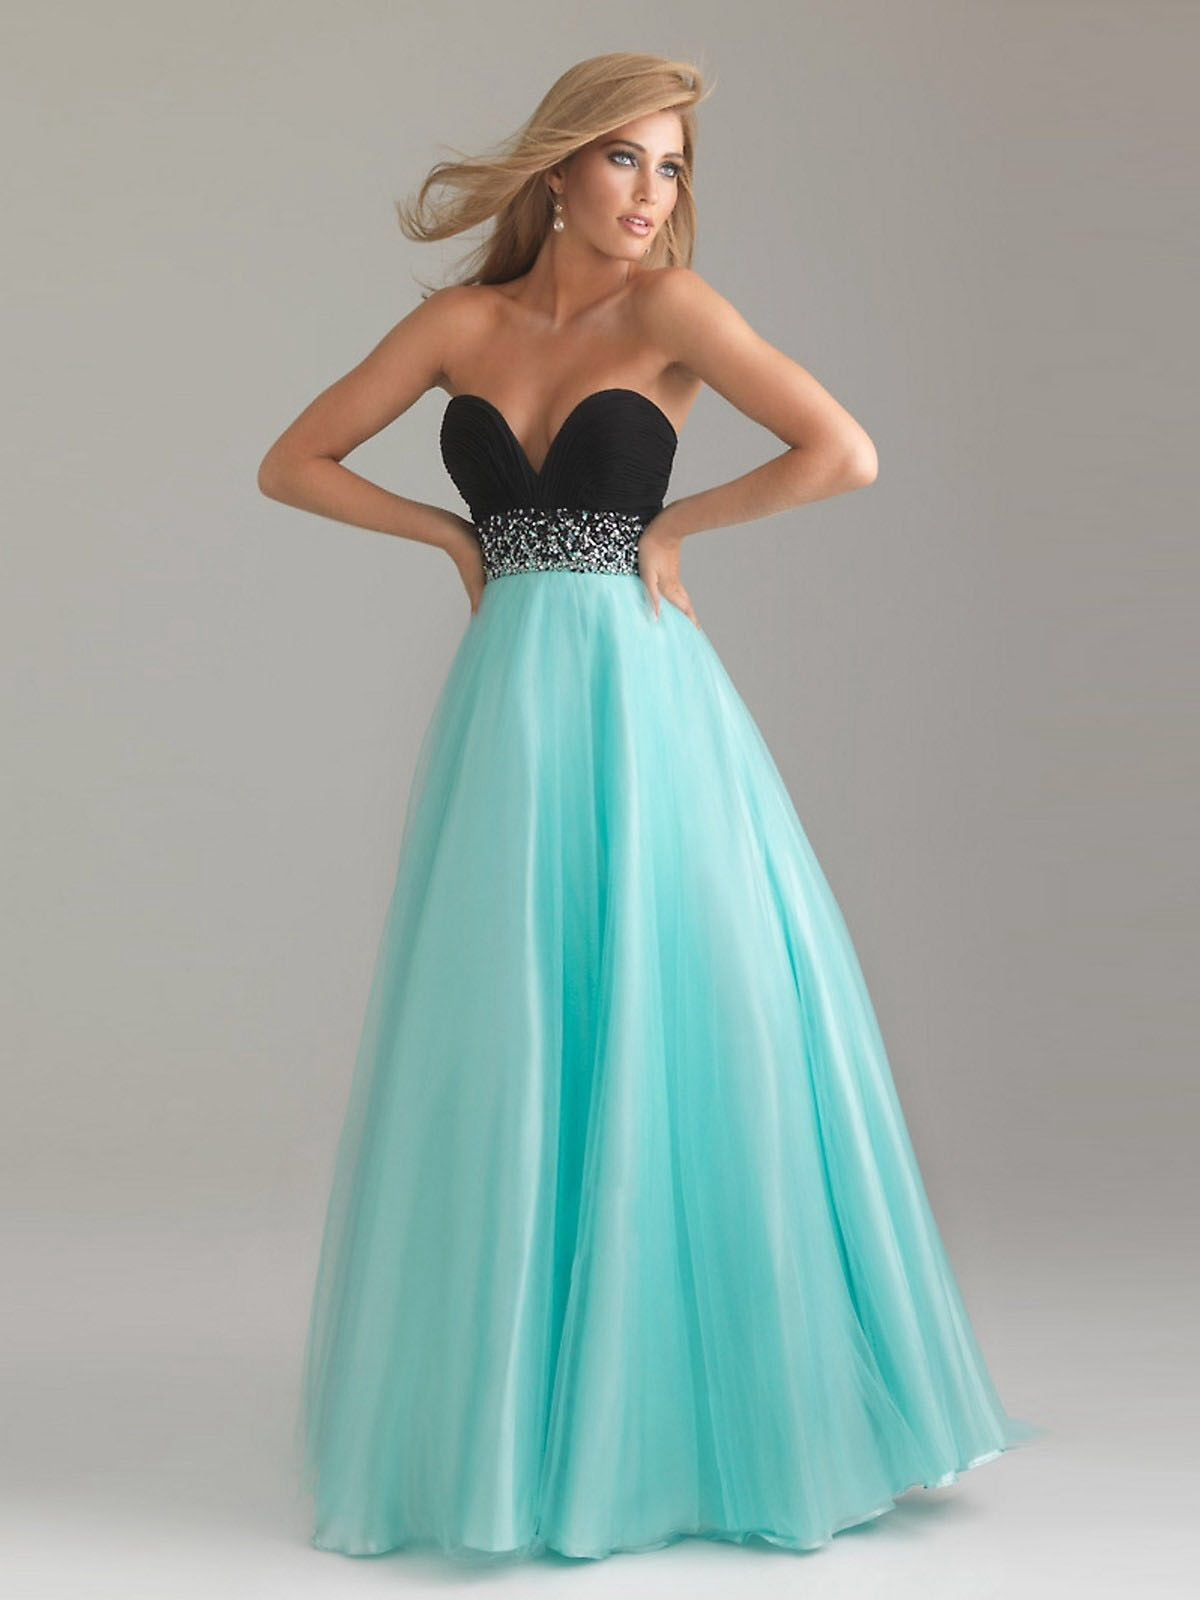 Prom dress maddy pinterest prom dress